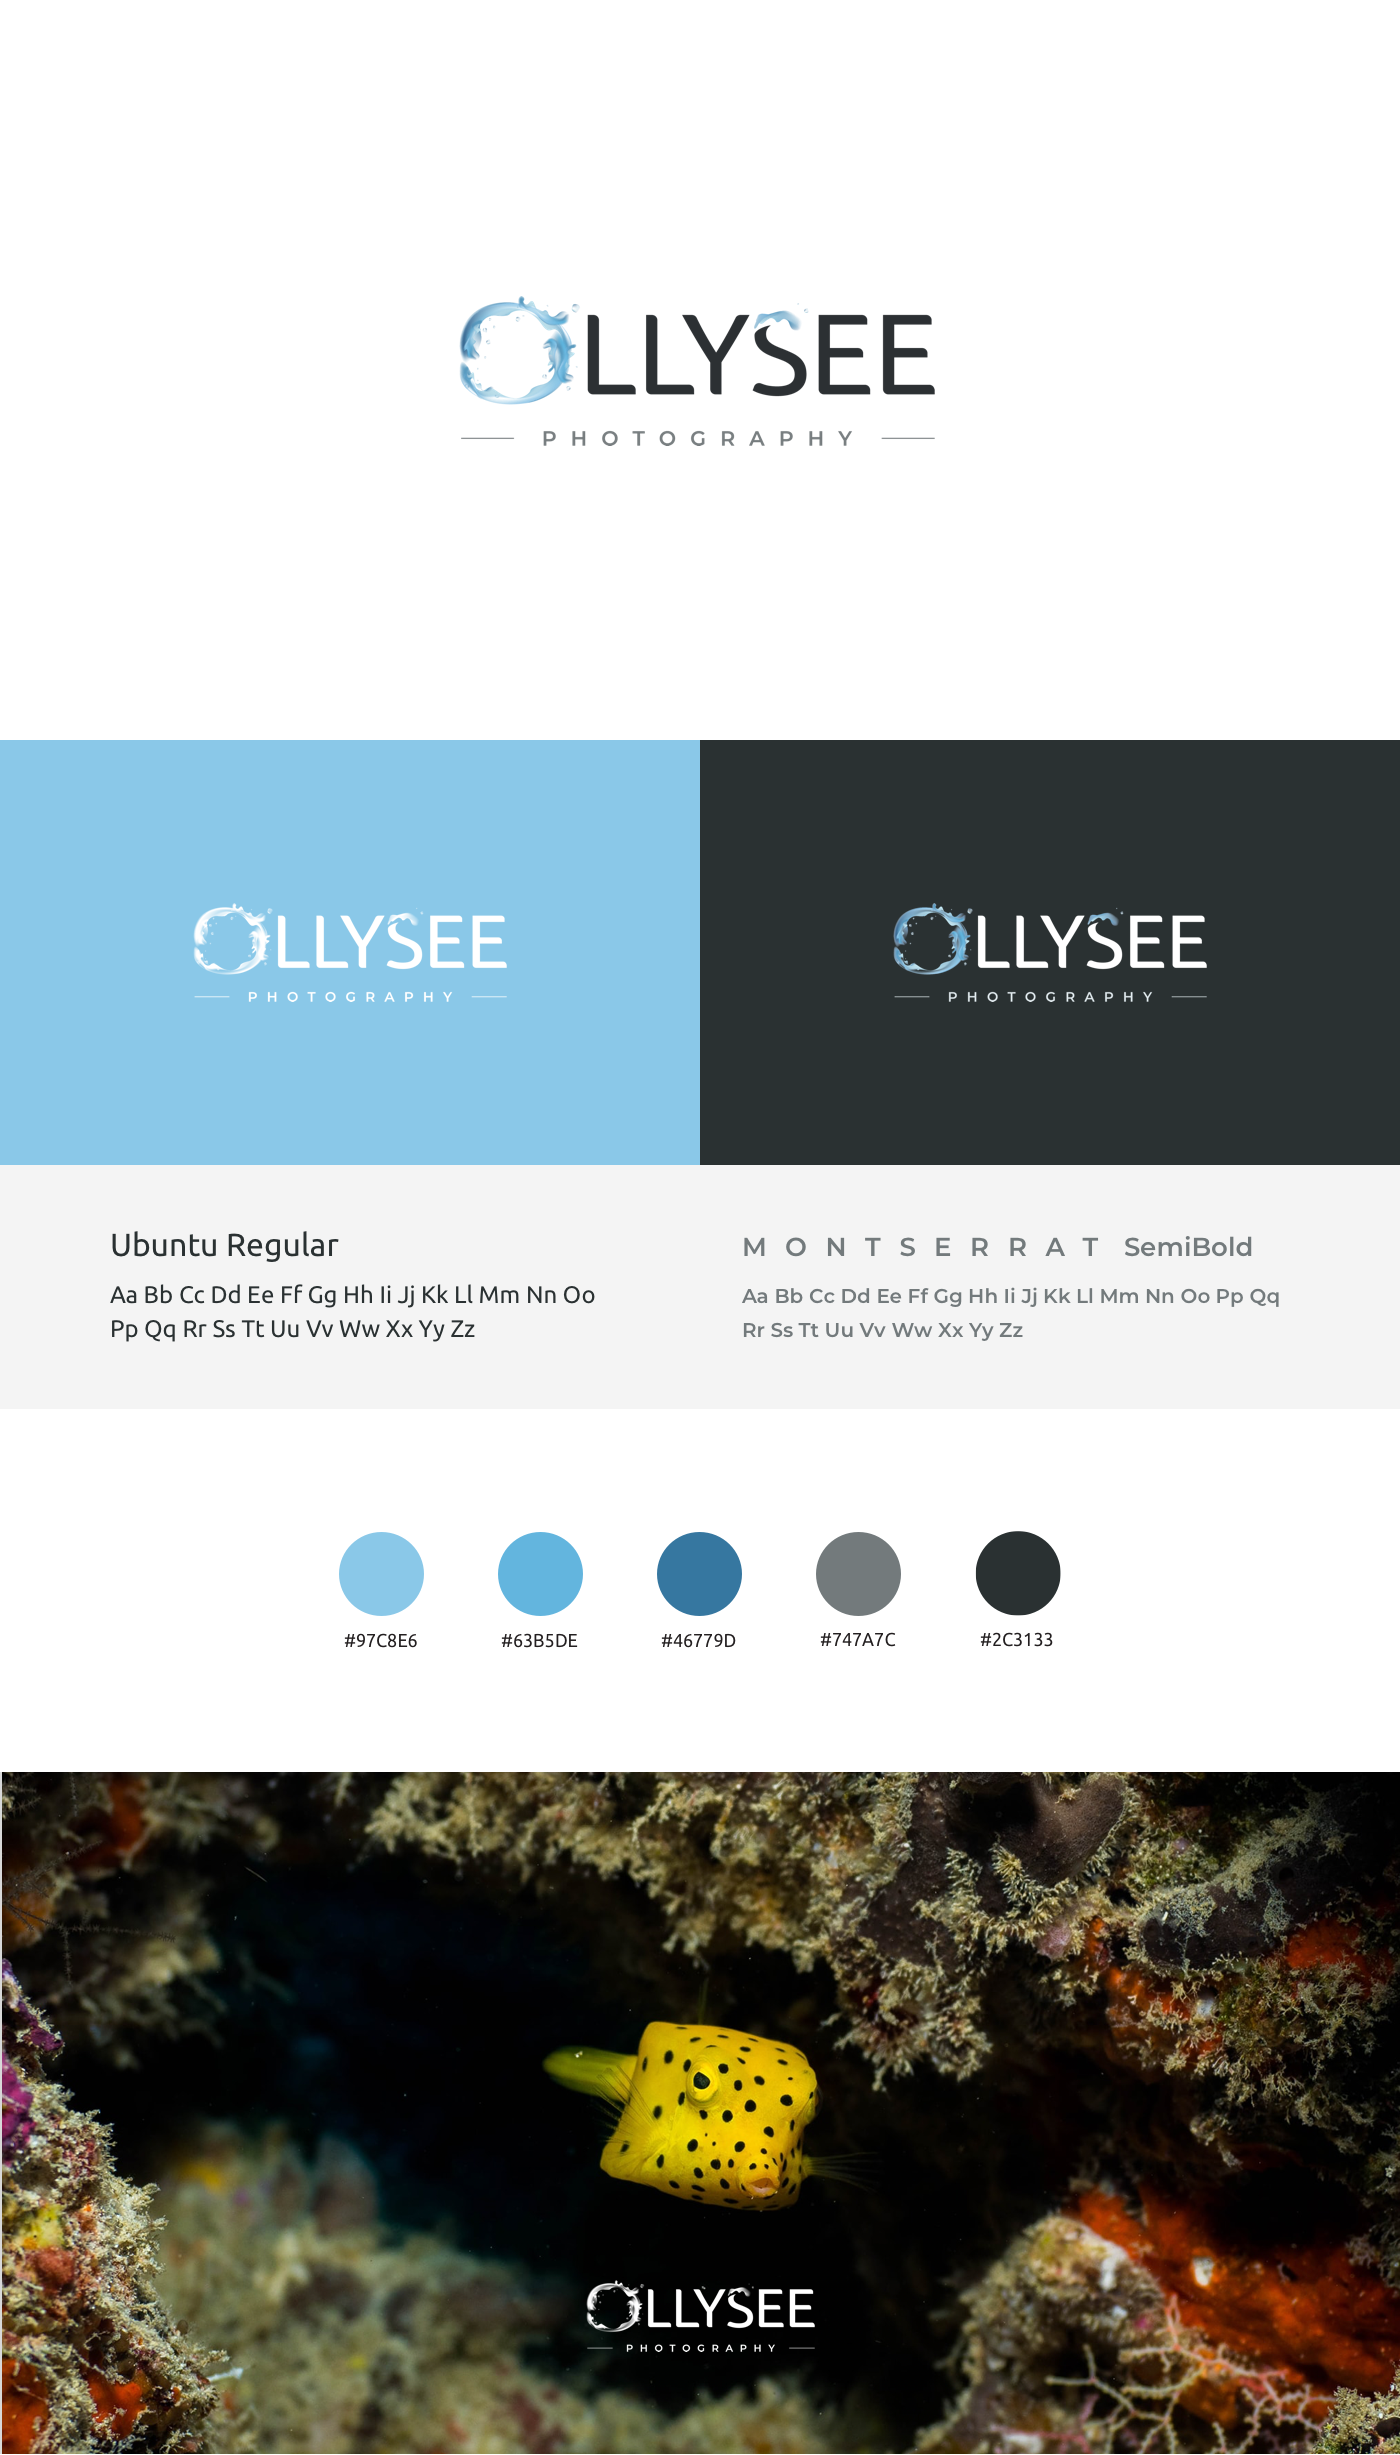 Ollysee logo project